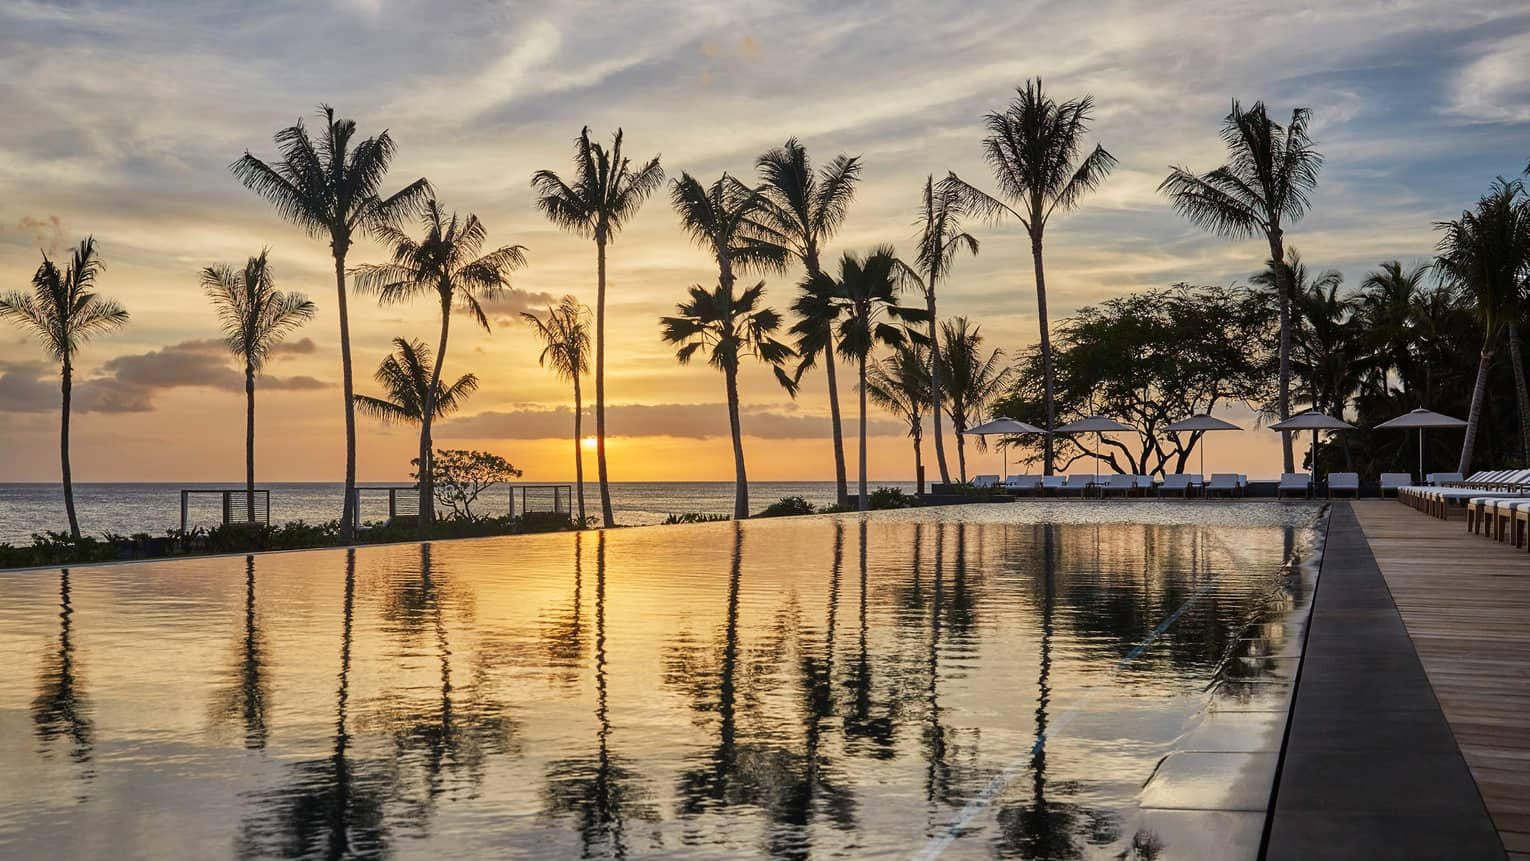 Silhouettes of tall palm trees reflected on outdoor swimming pool against orange sunset